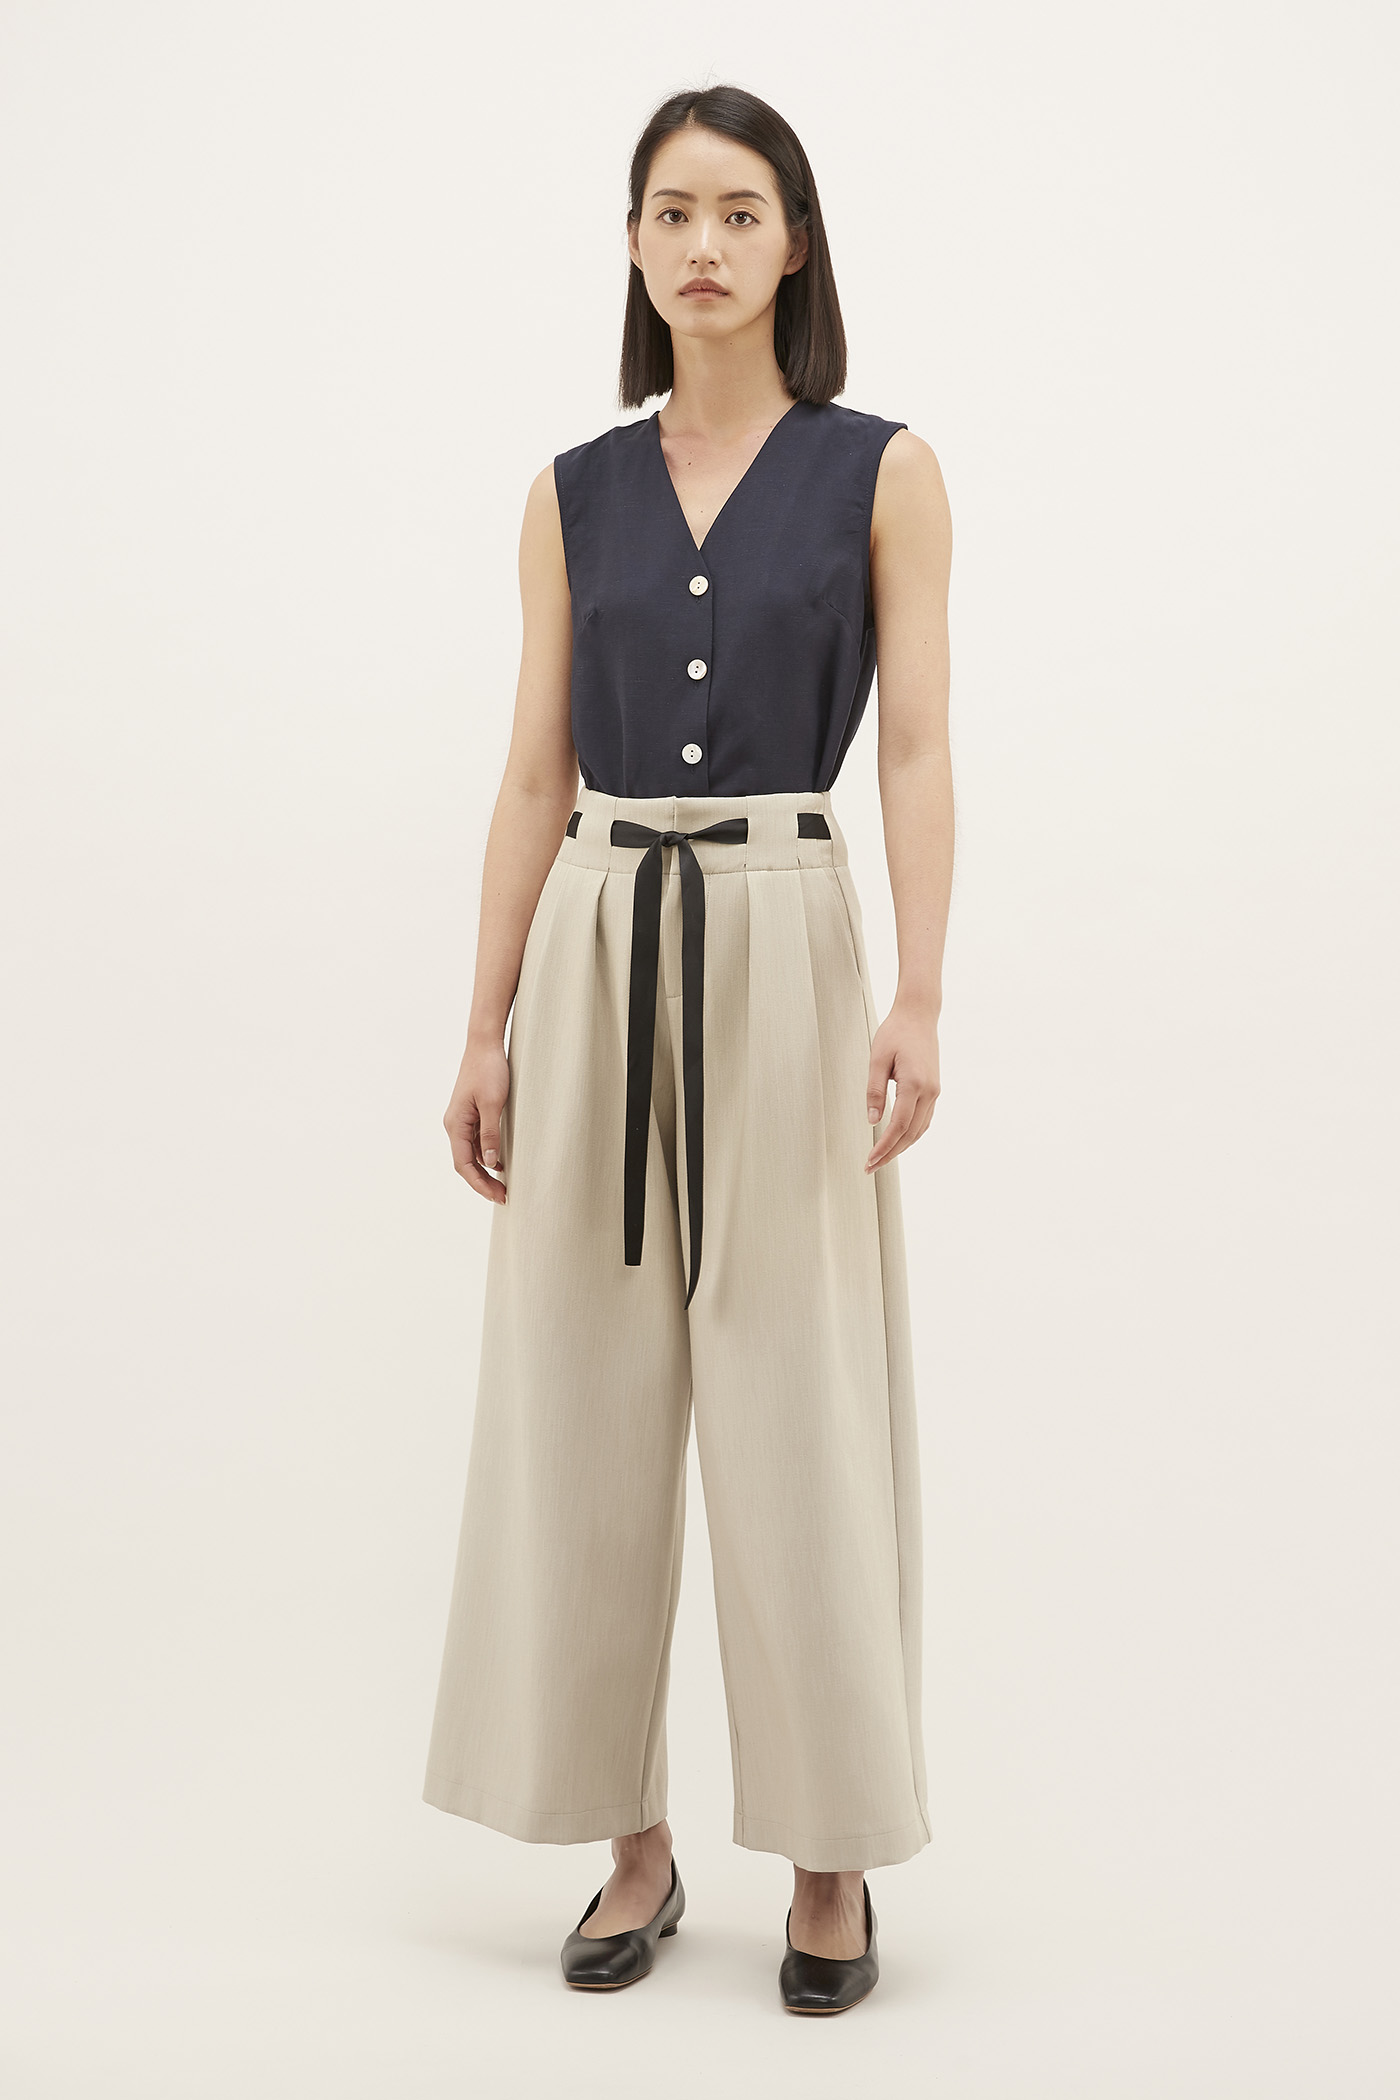 Holly Bow-tie Pants